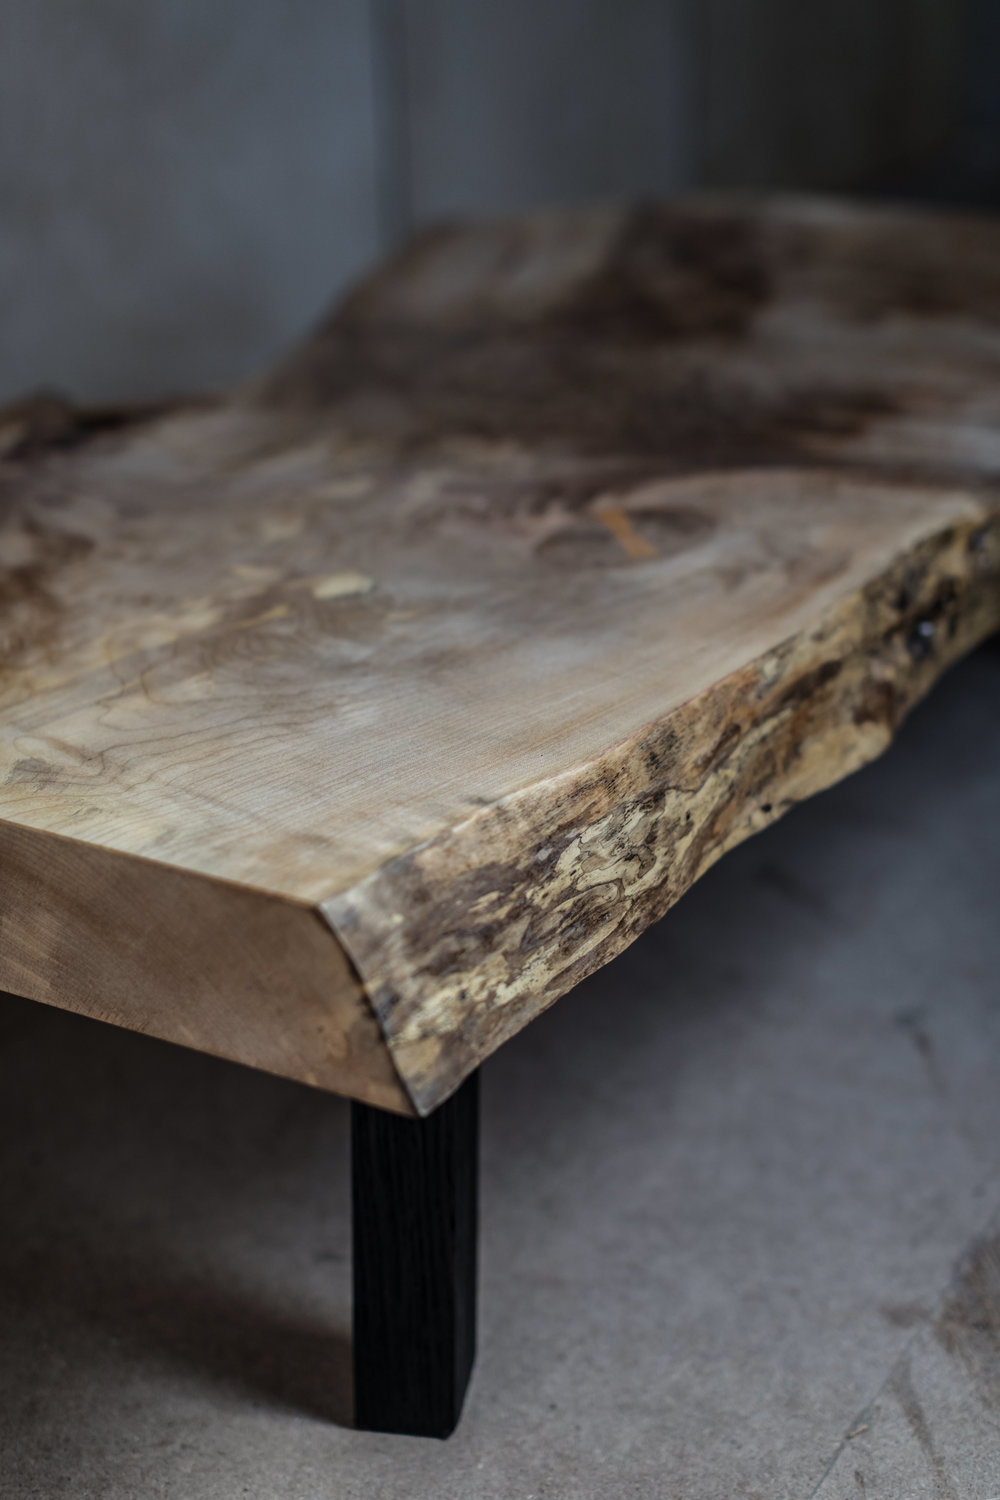 Takumi Woodwork - Sycamore Coffee Table